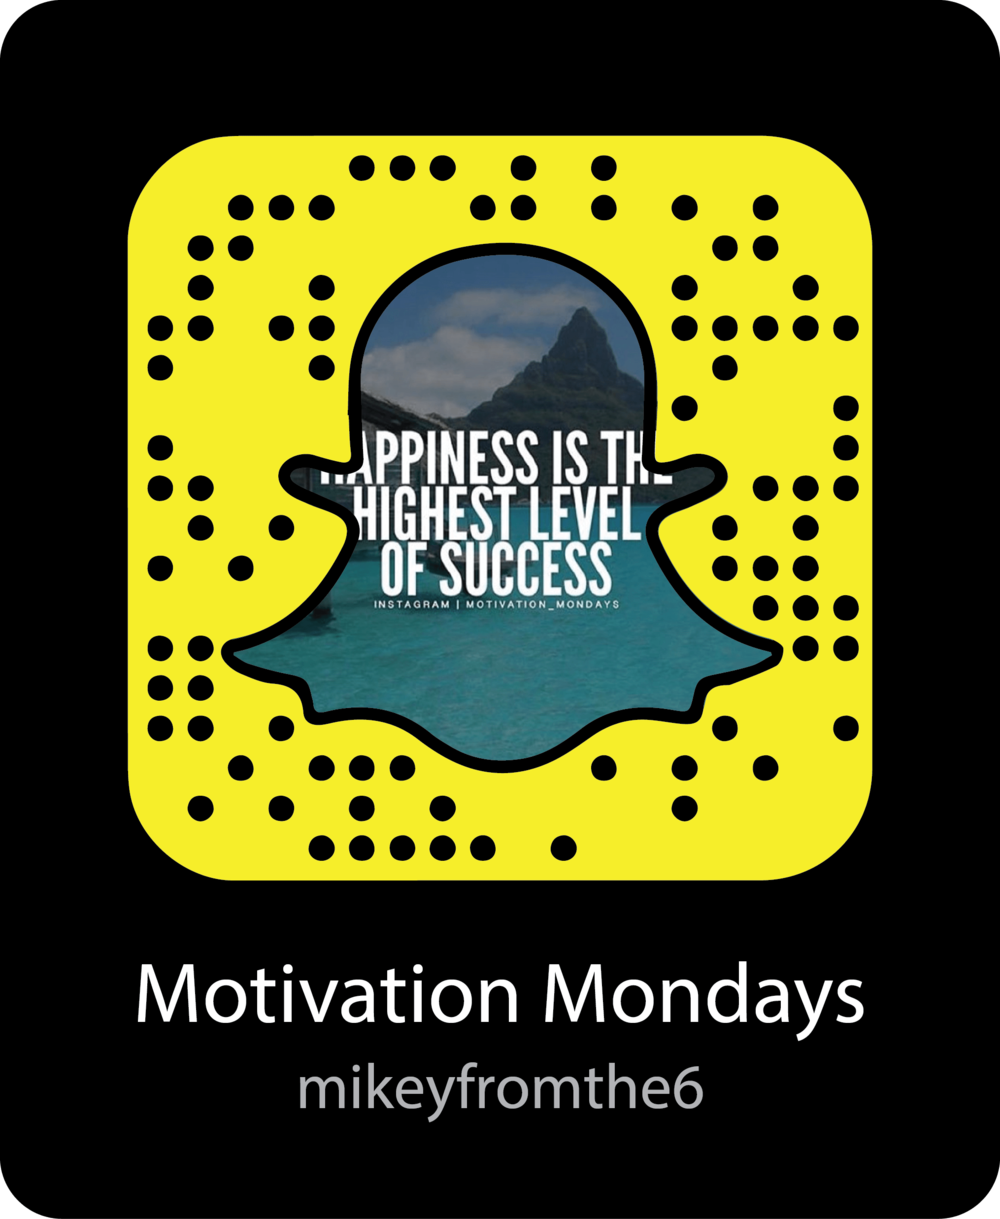 motivation-mondays-storytellers-snapchat-snapcode.png